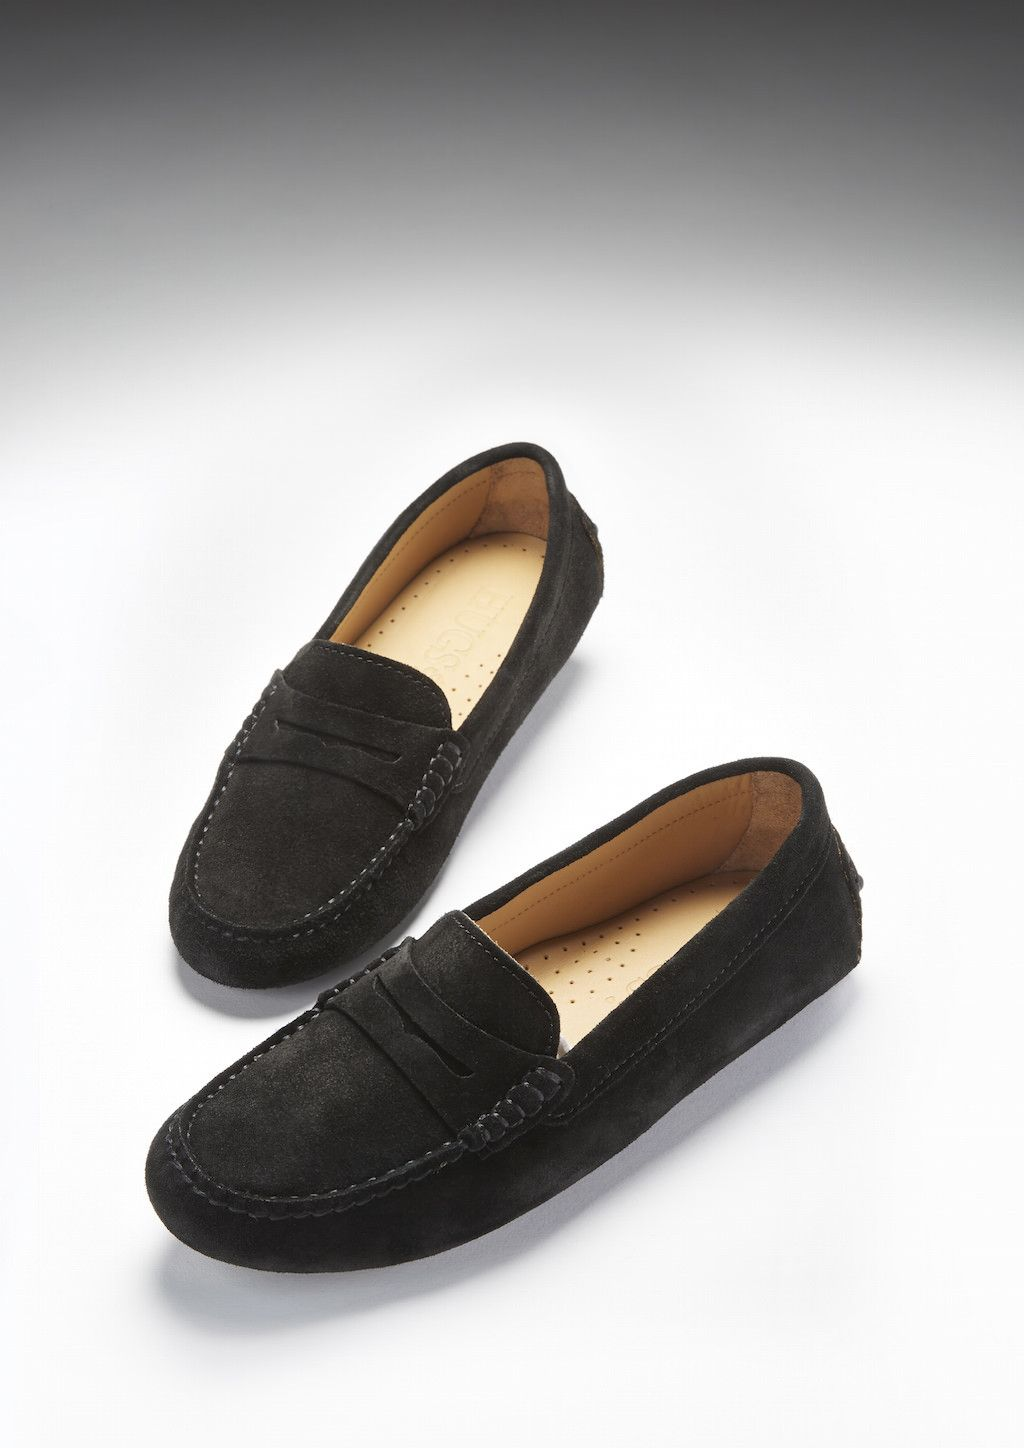 905e283f948 Women s Penny Driving Loafers